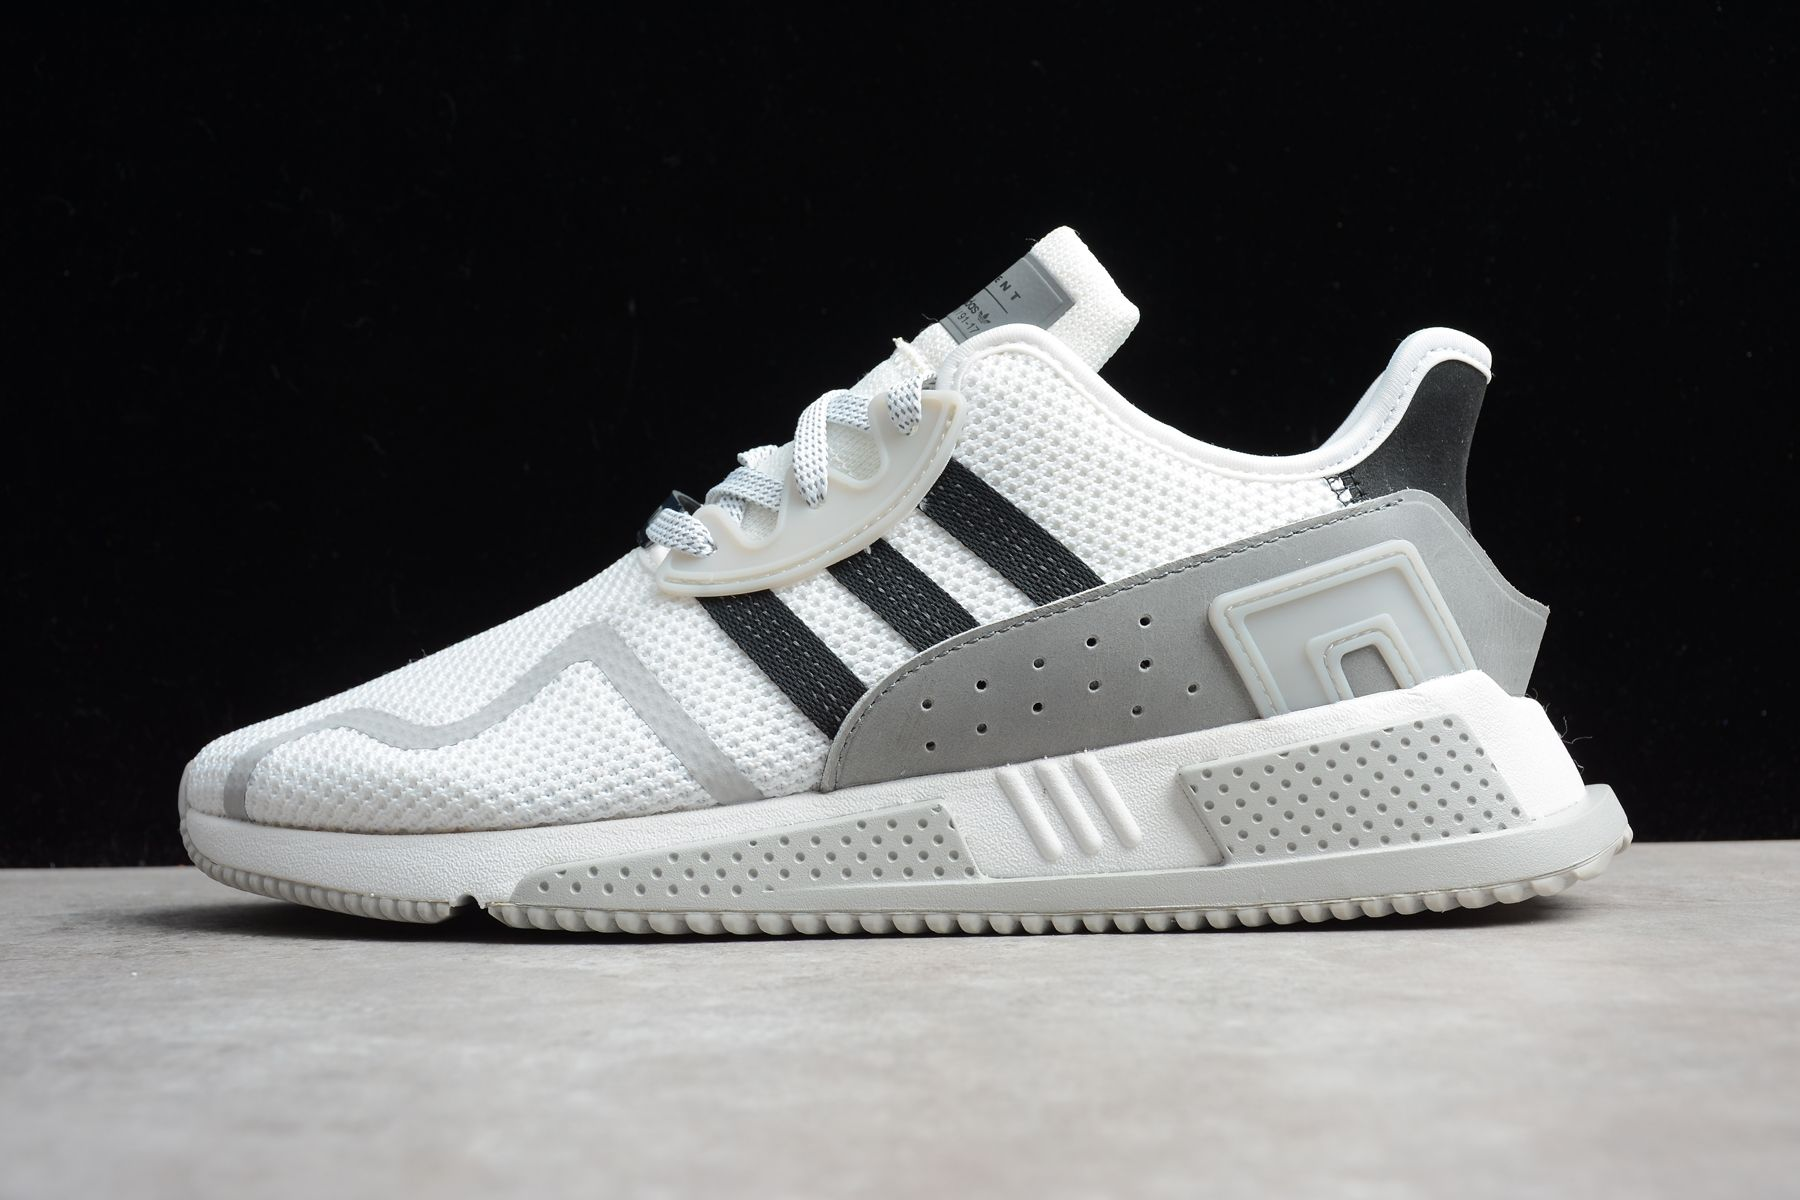 3abfc8ace 2018 UK FR Trainers ADIDAS EQUIPMENT EQT CUSHION ADV 91-17 White Black  BY9508